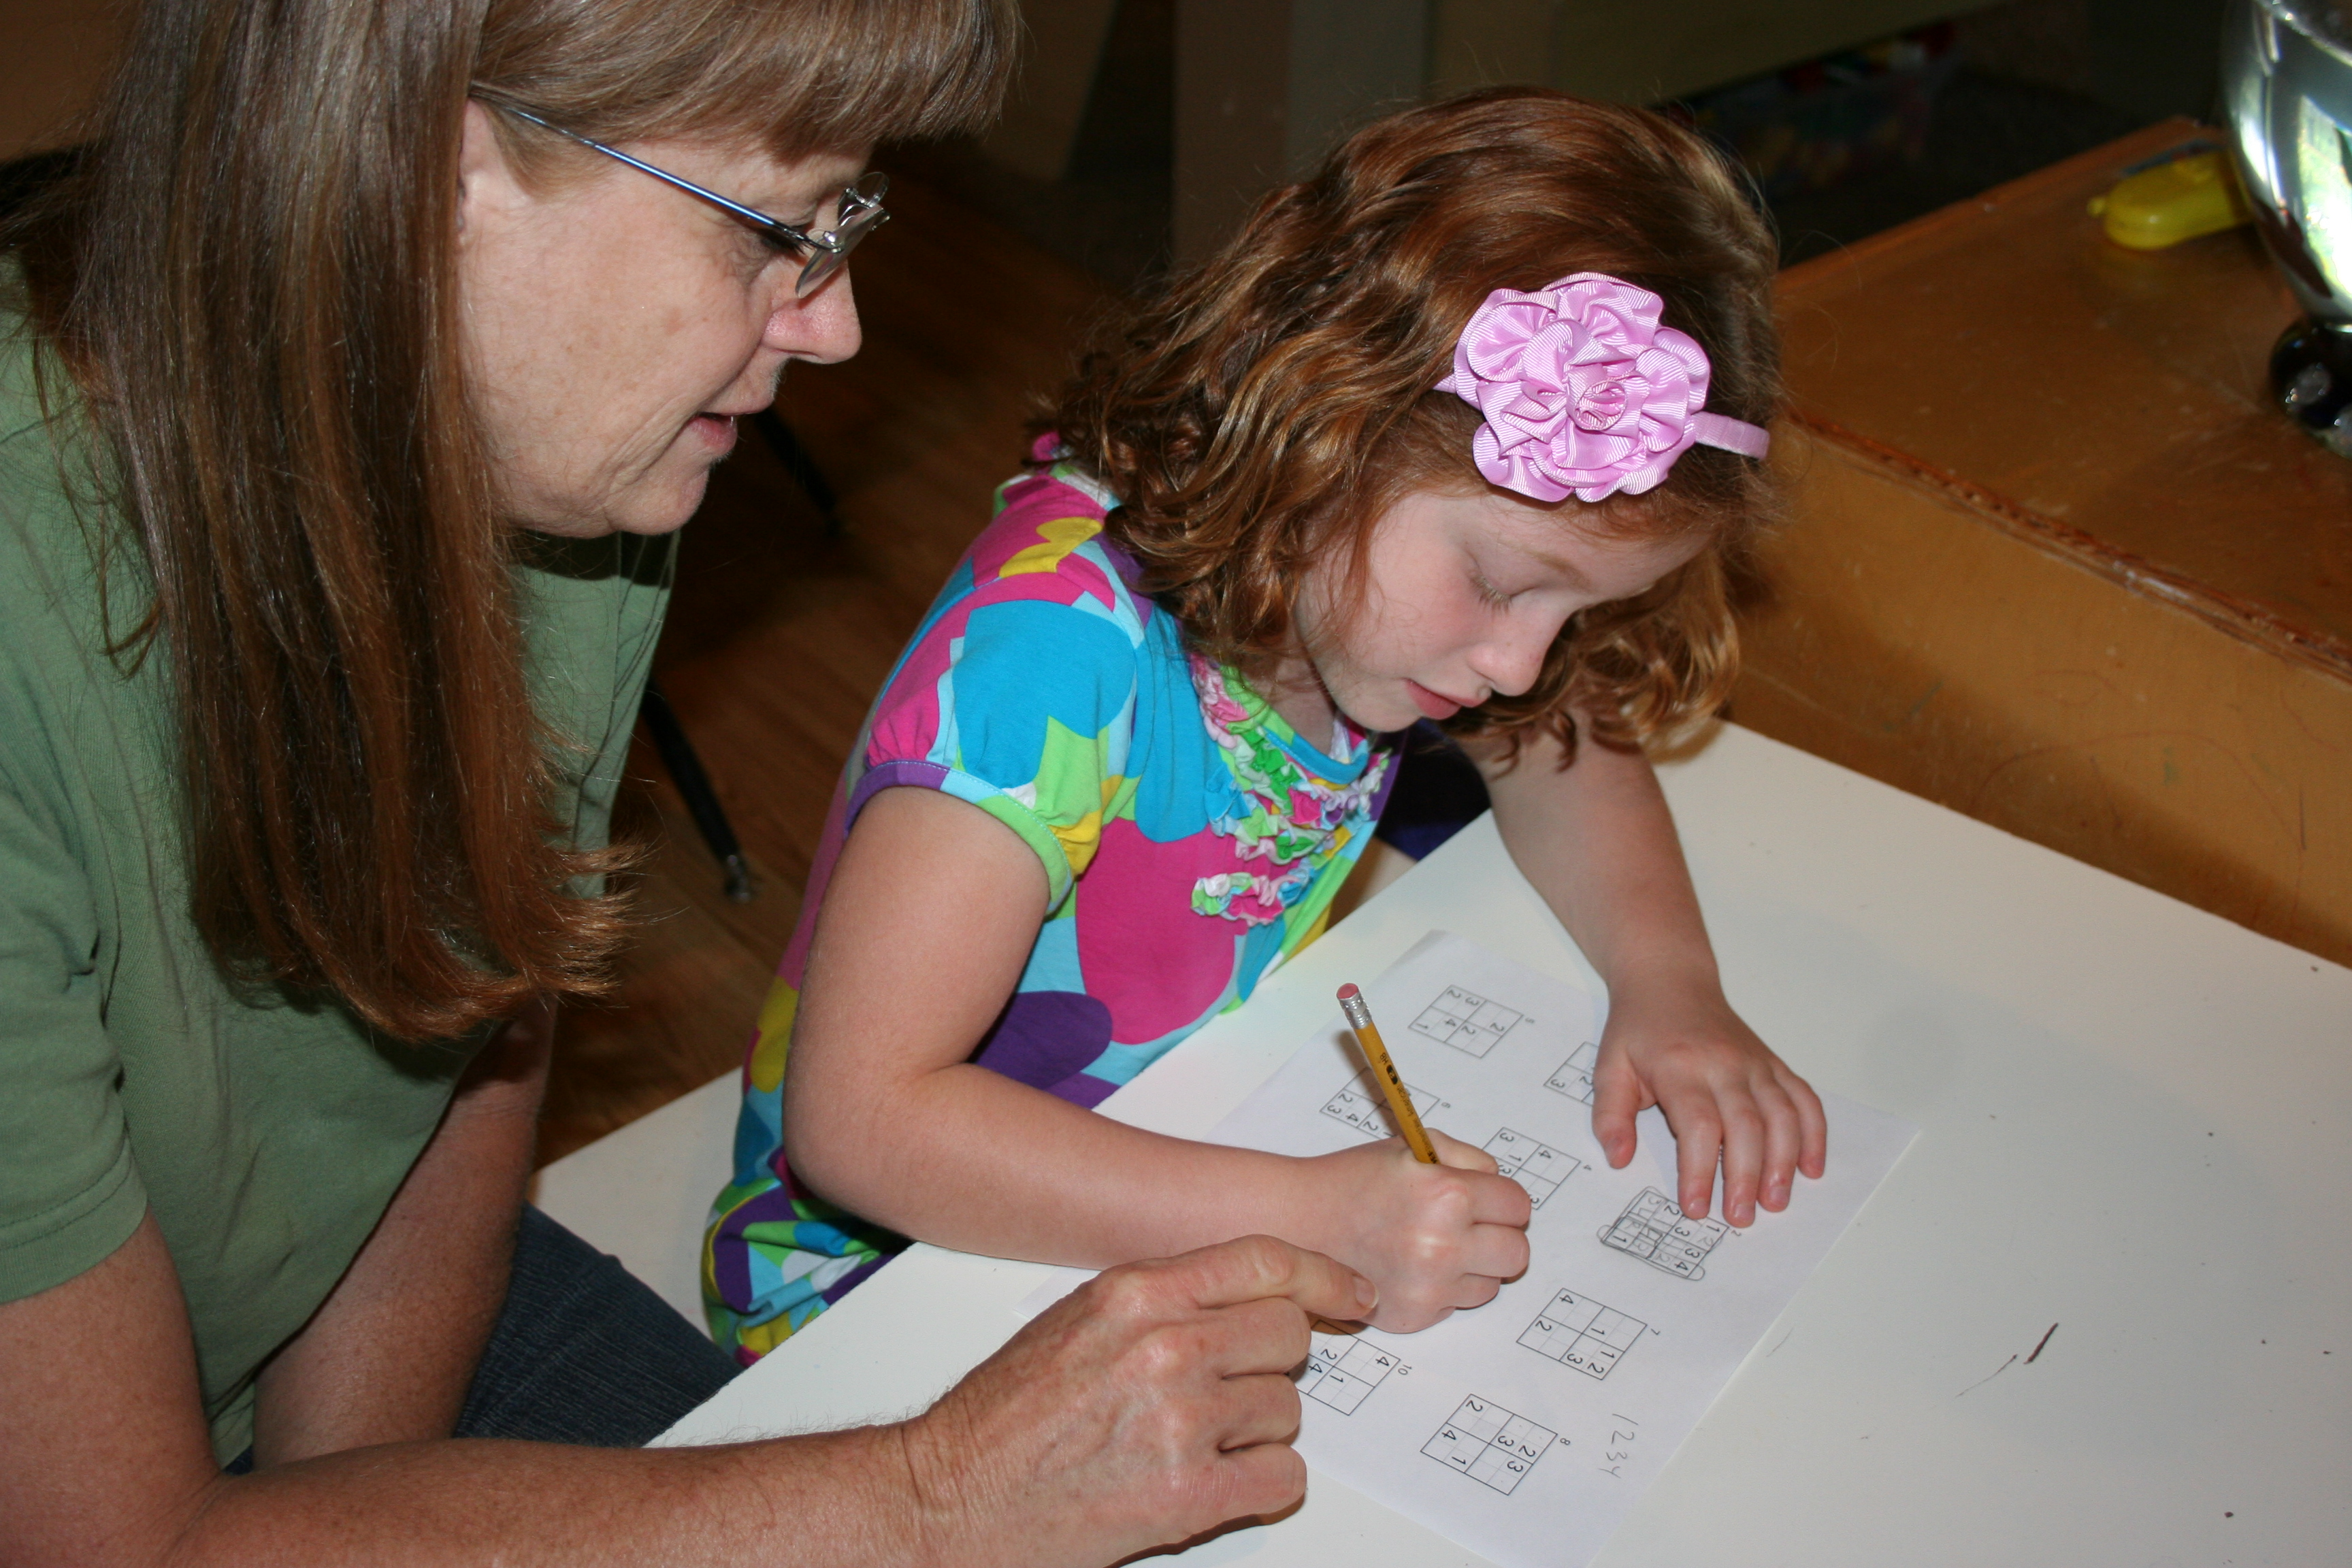 Table work with Margie with at A Quiet Forest daycare and Preschool in Duvall WA